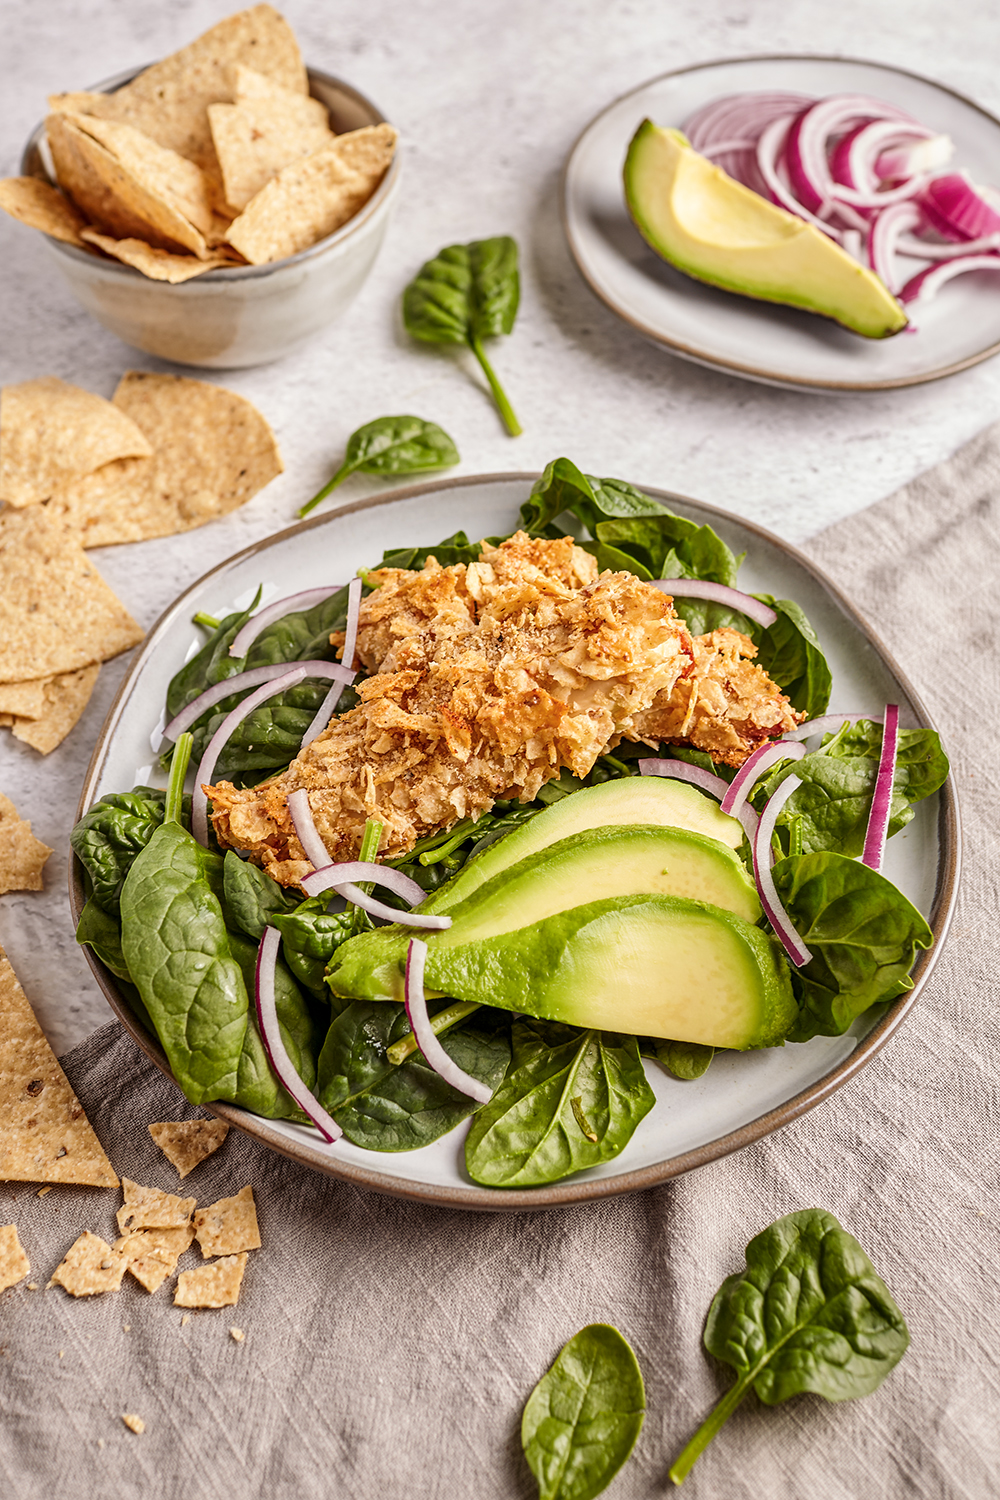 Crusted nachos chicken with avocado and spinach